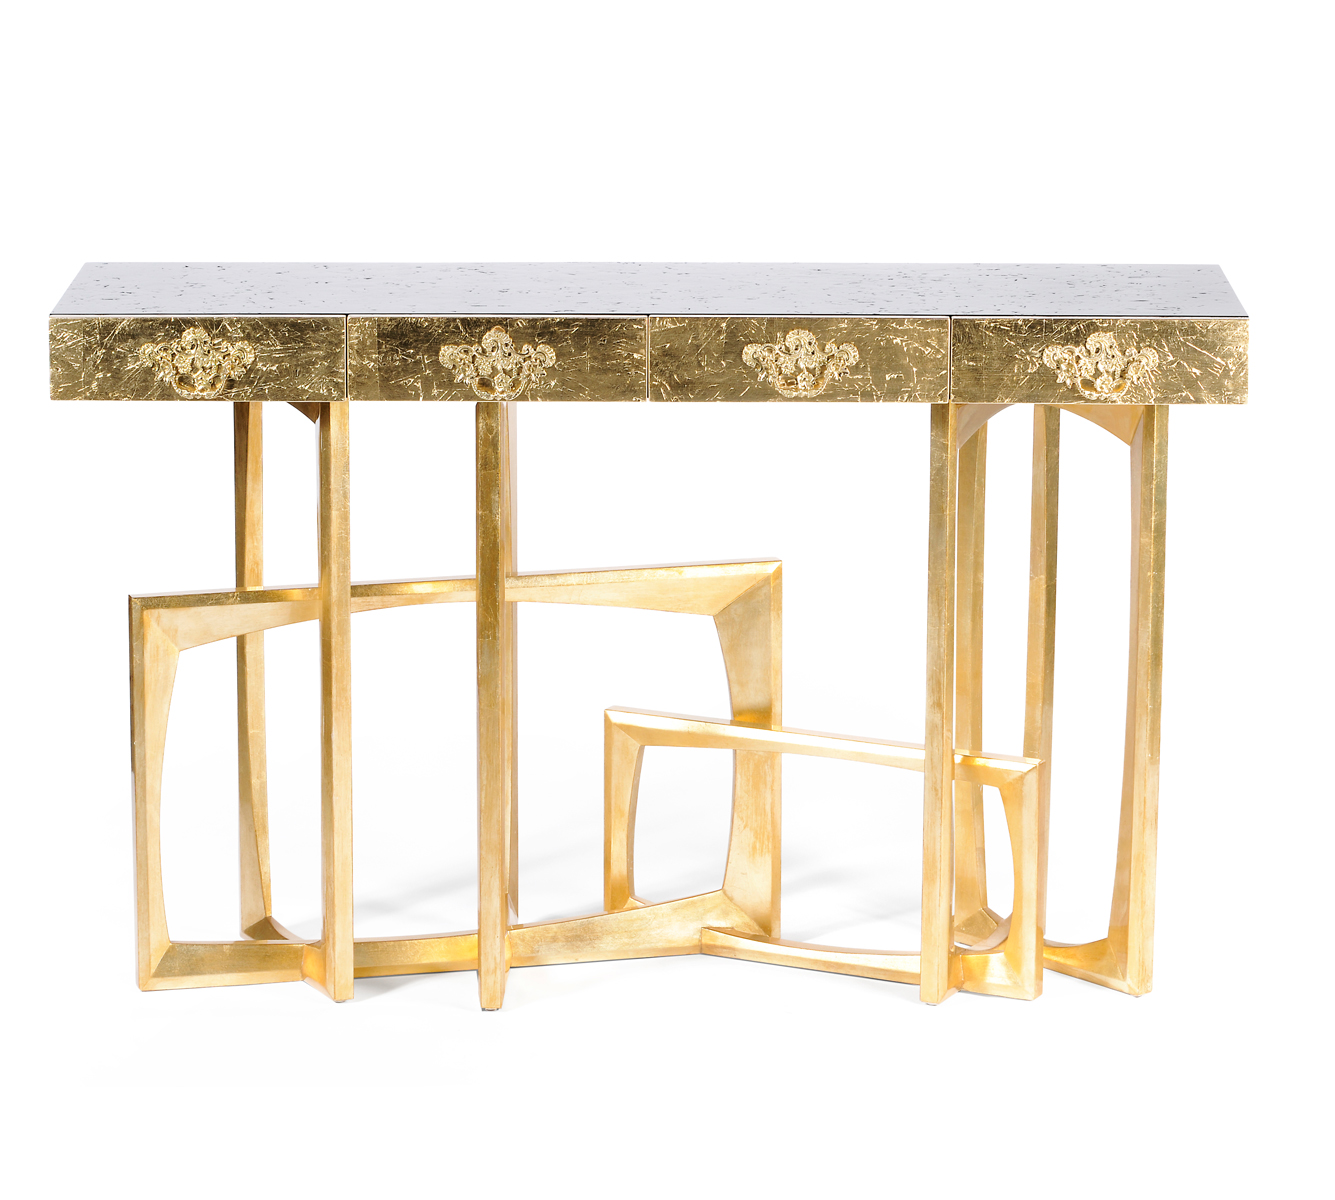 Modern Console Tables 10 Modern Console Tables for your Home Design Improvement Console Table for Your Living Room Design7